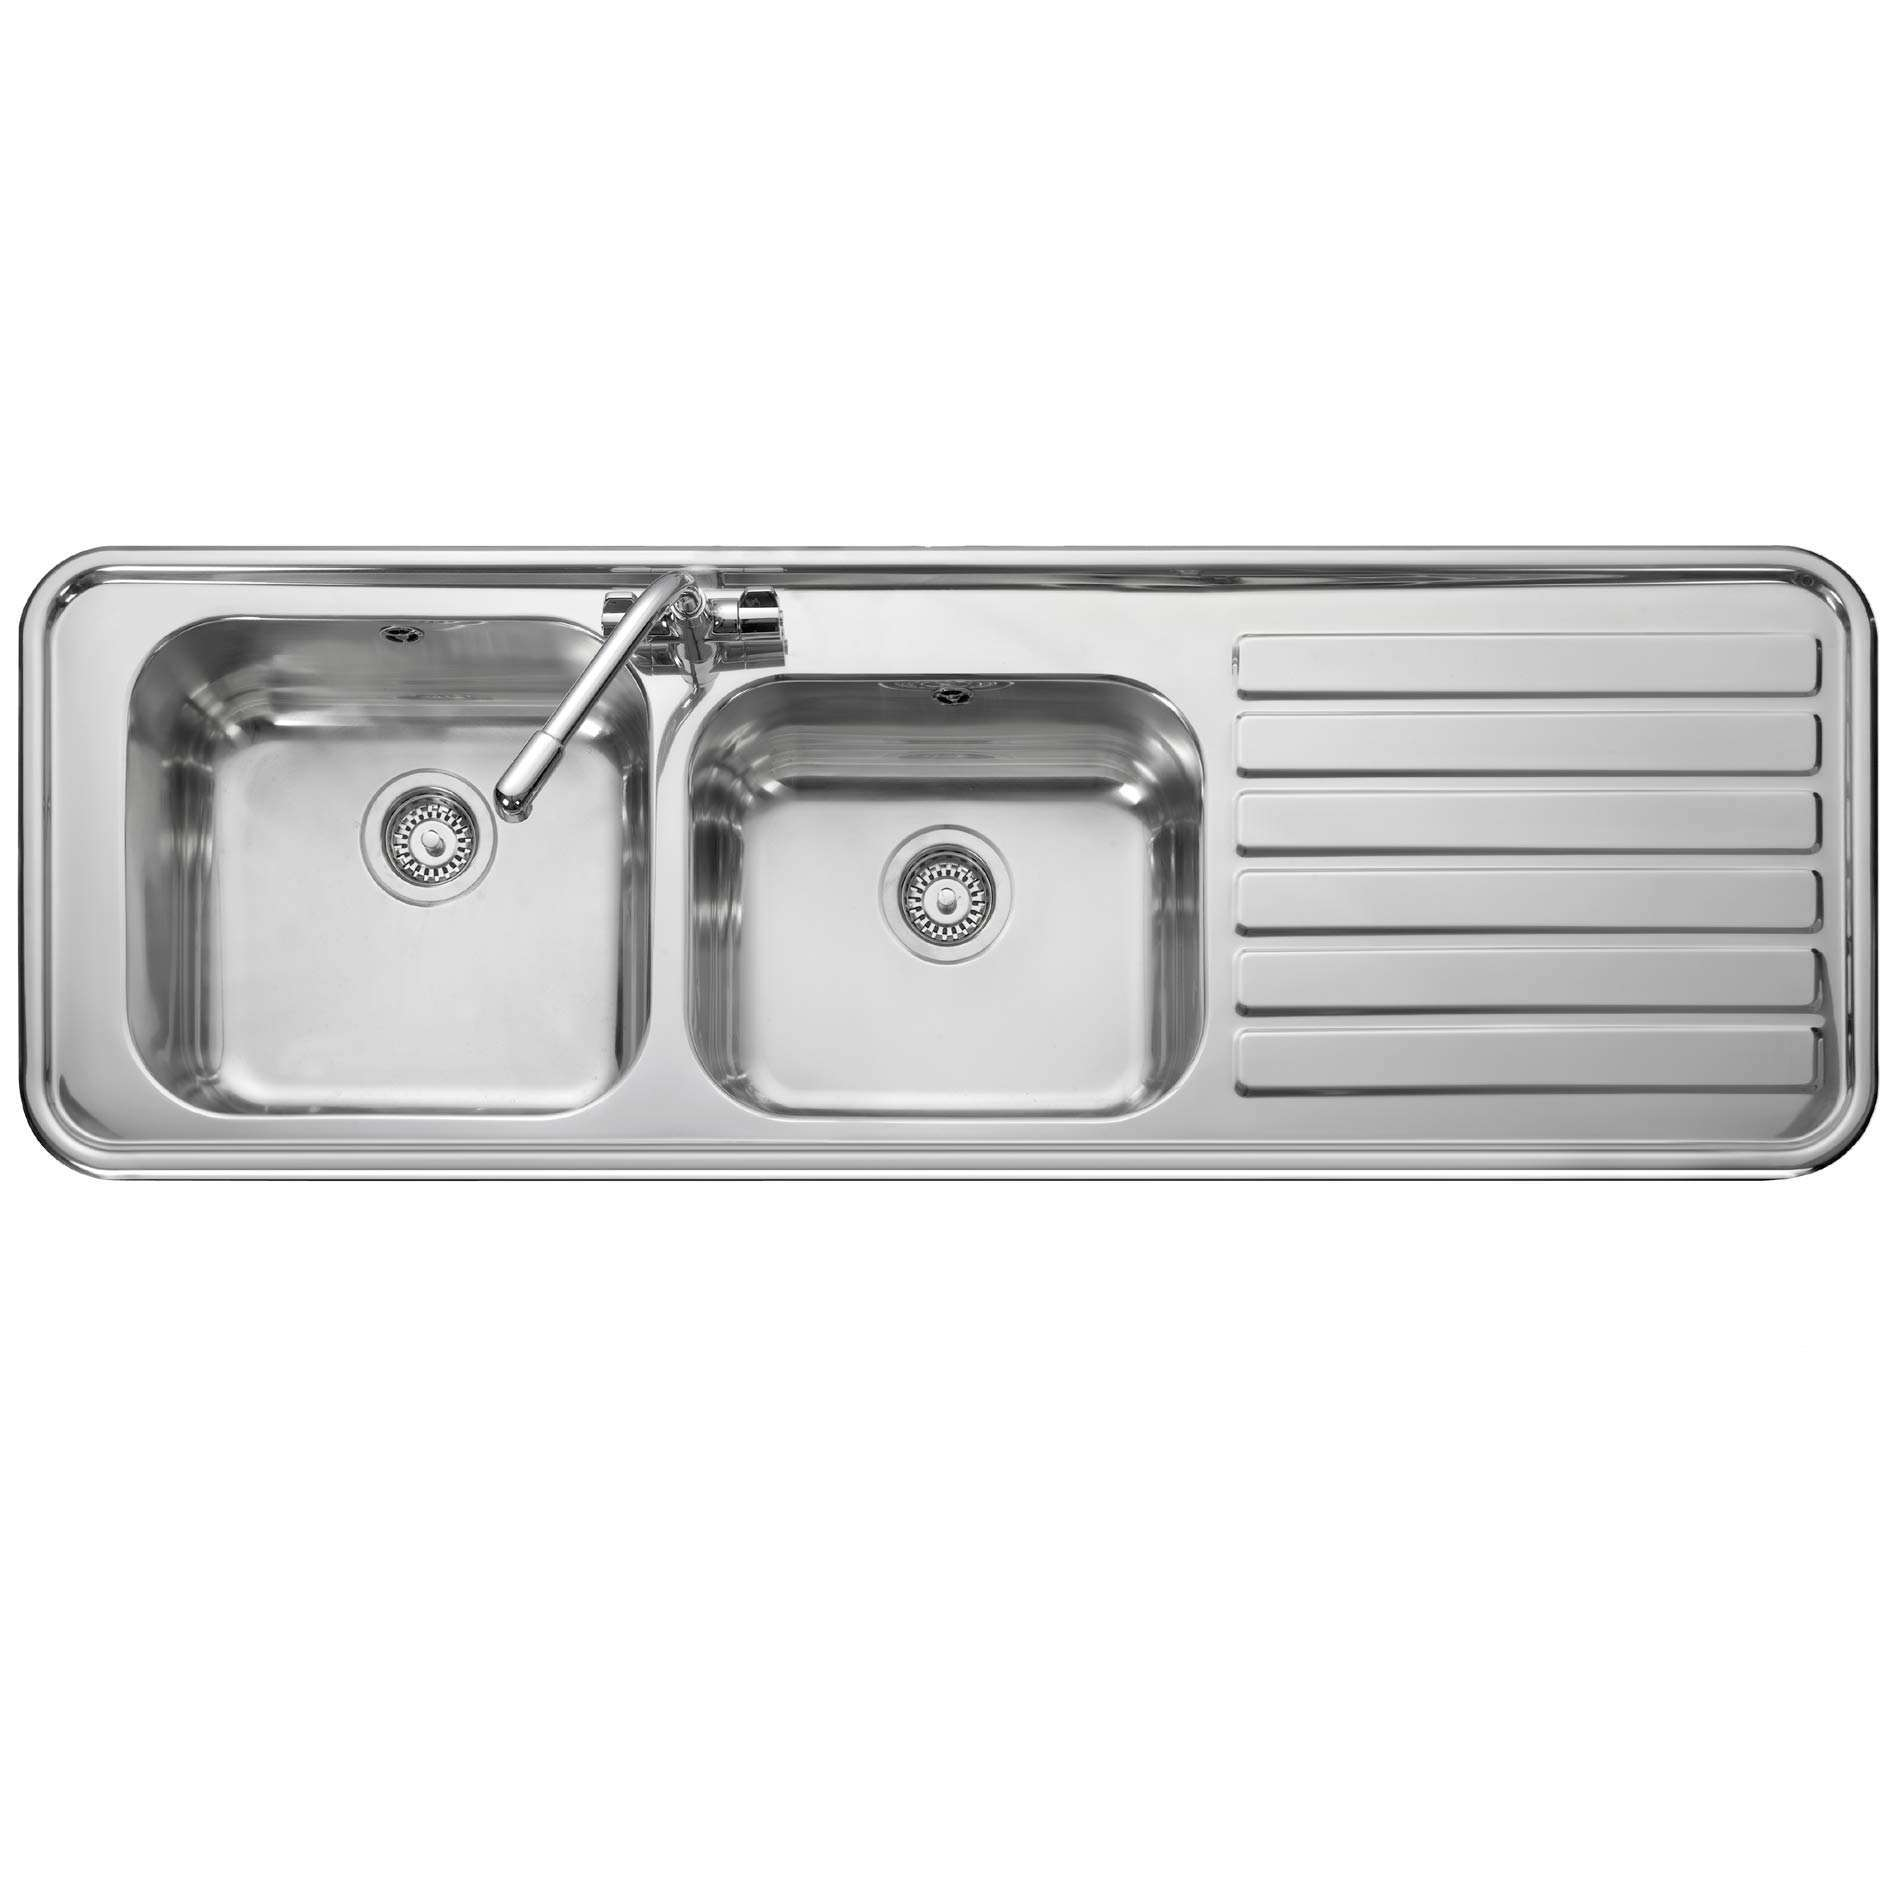 Leisure: Luxe LX155 Handed Stainless Steel Sink - Kitchen Sinks & Taps